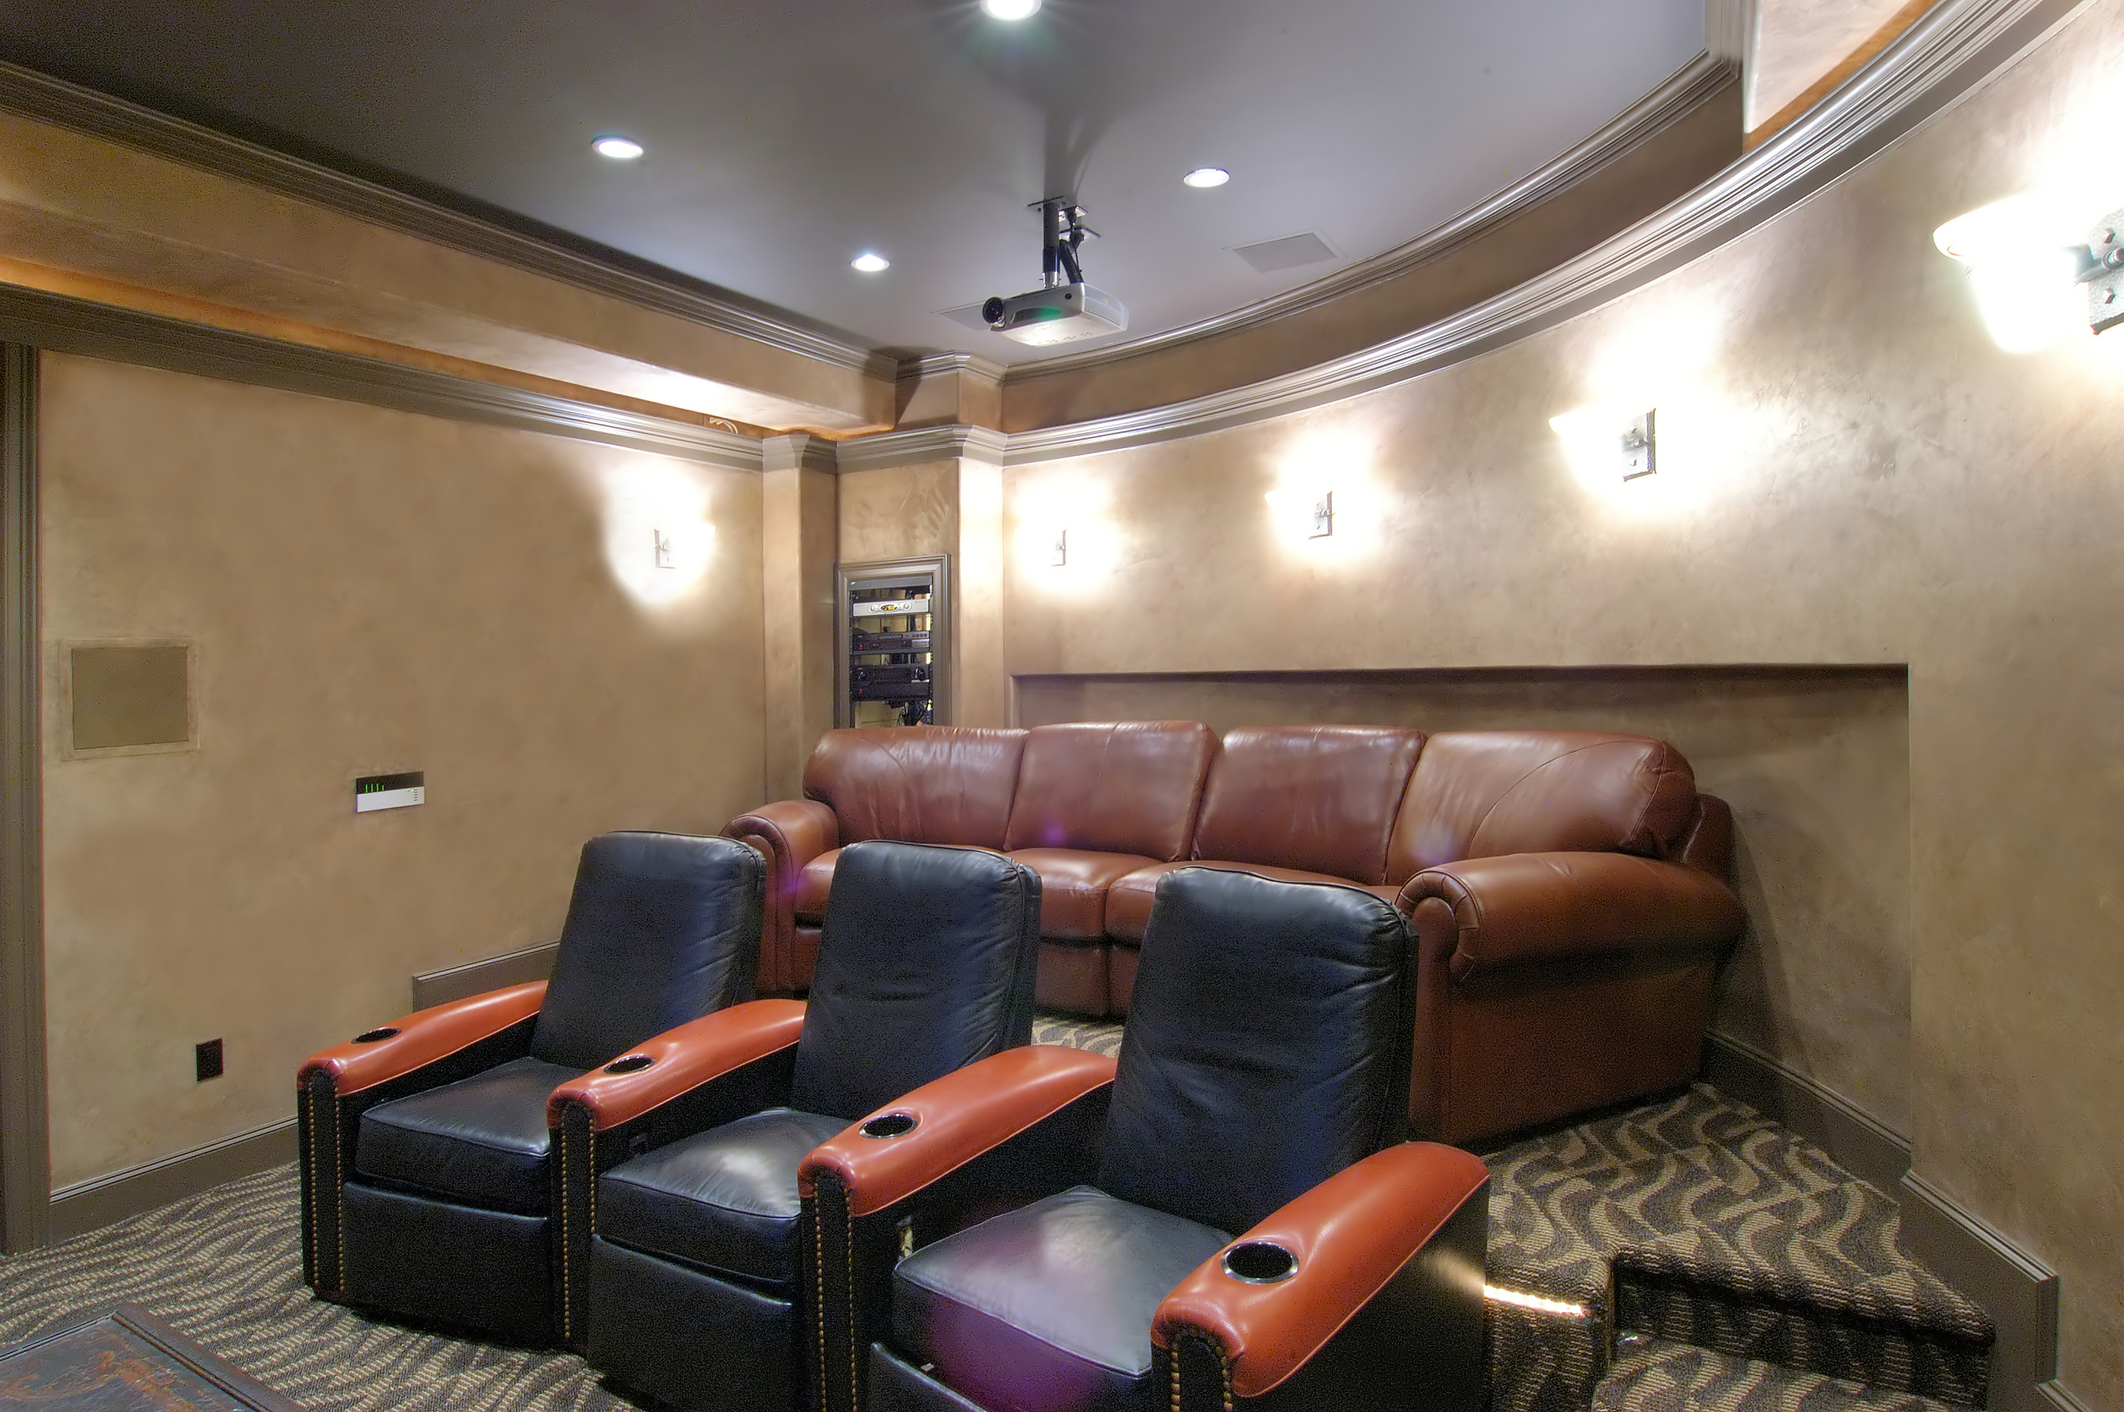 home theater decor - Home Theater Decor